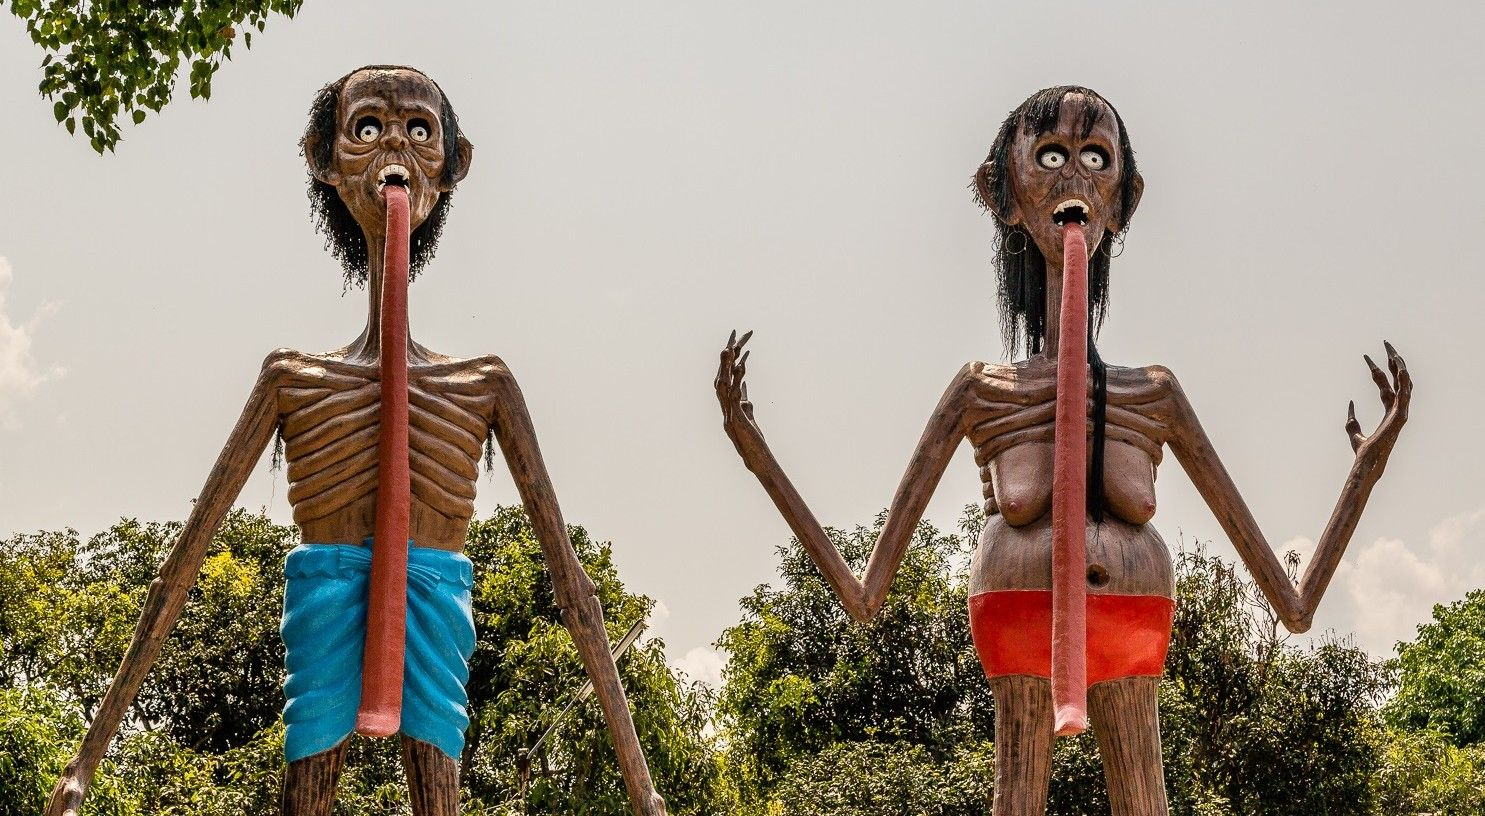 10 Of The Weirdest Theme Parks In The World